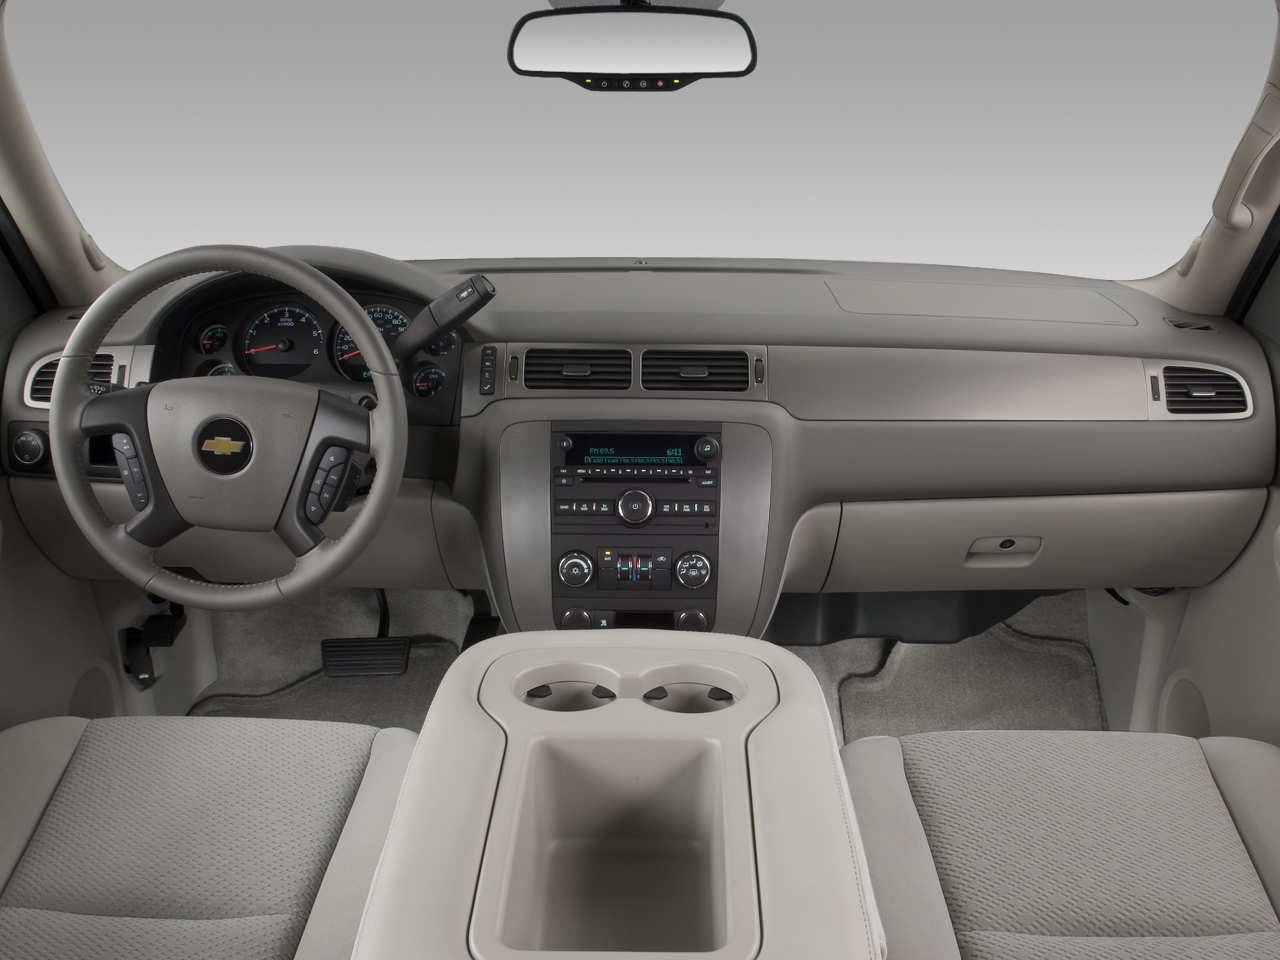 2010 Chevrolet Suburban. Reviewers are, for the most part, impressed with